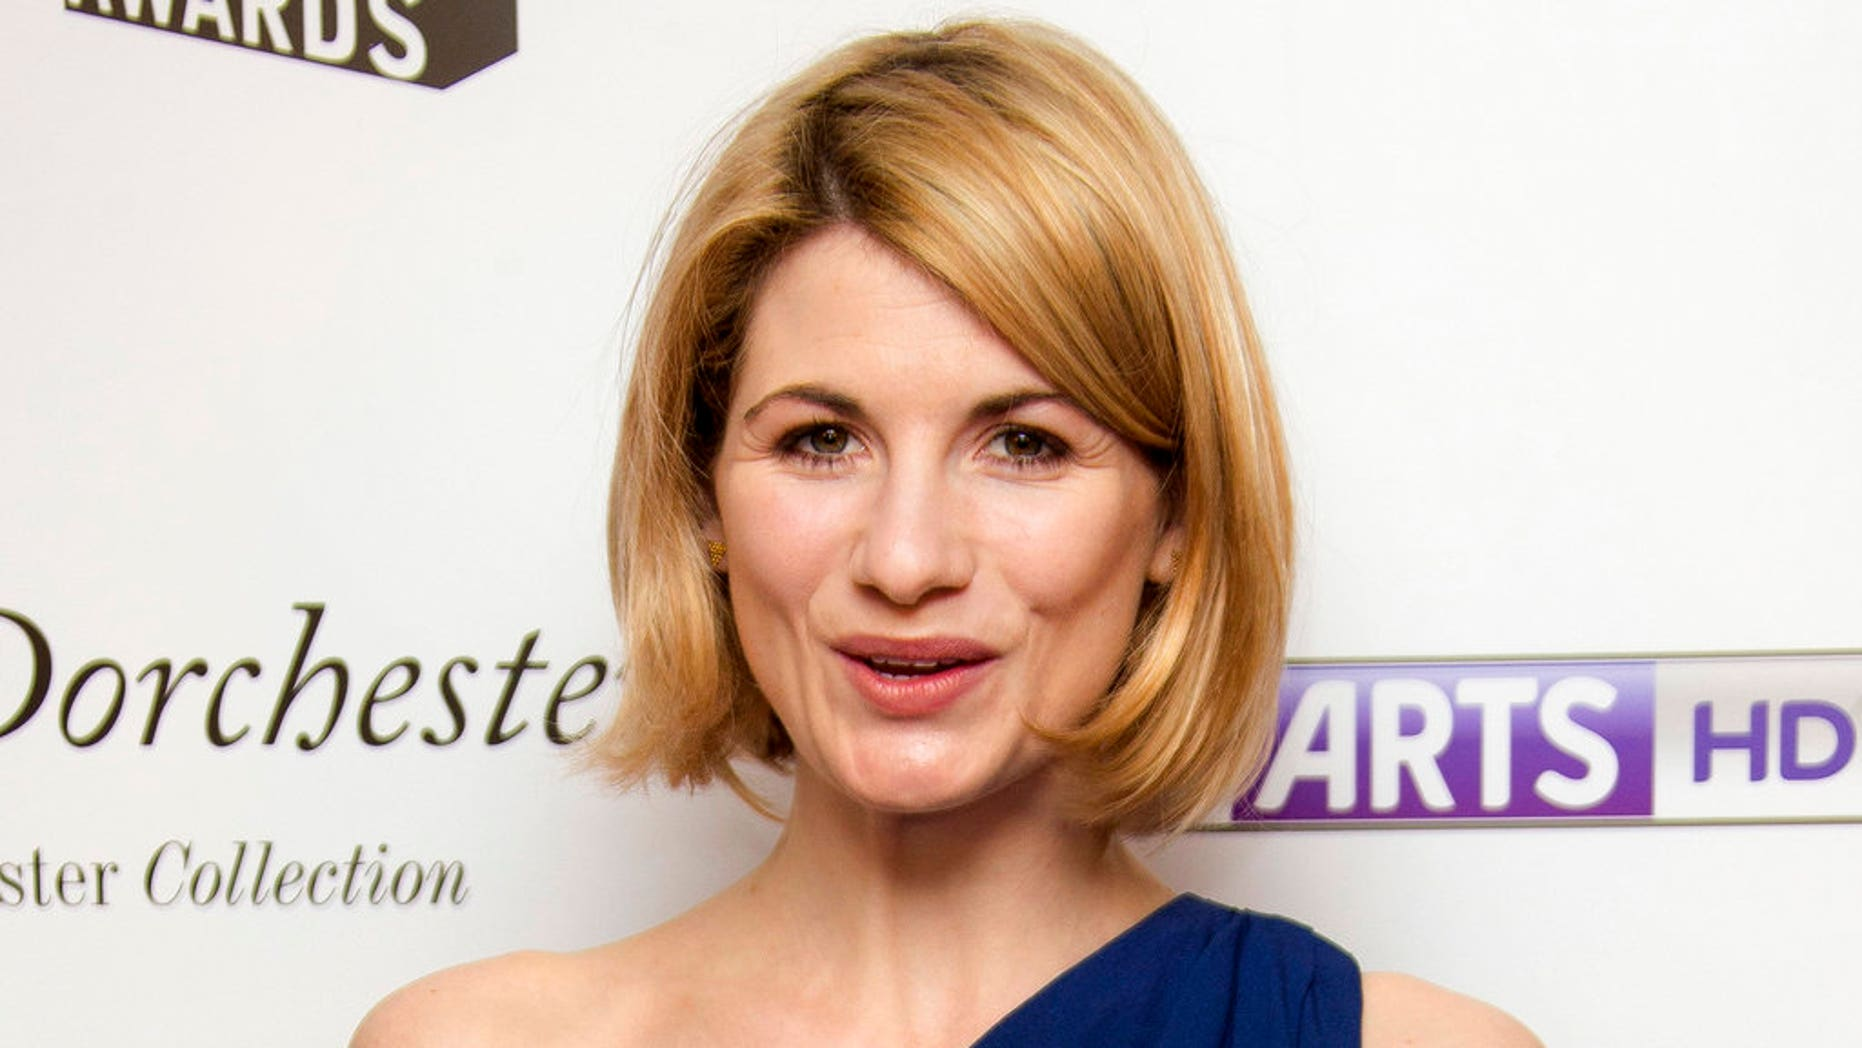 """Actress Jodie Whittaker has been cast as the first female Doctor on the BBC sci-fi series """"Doctor Who."""""""